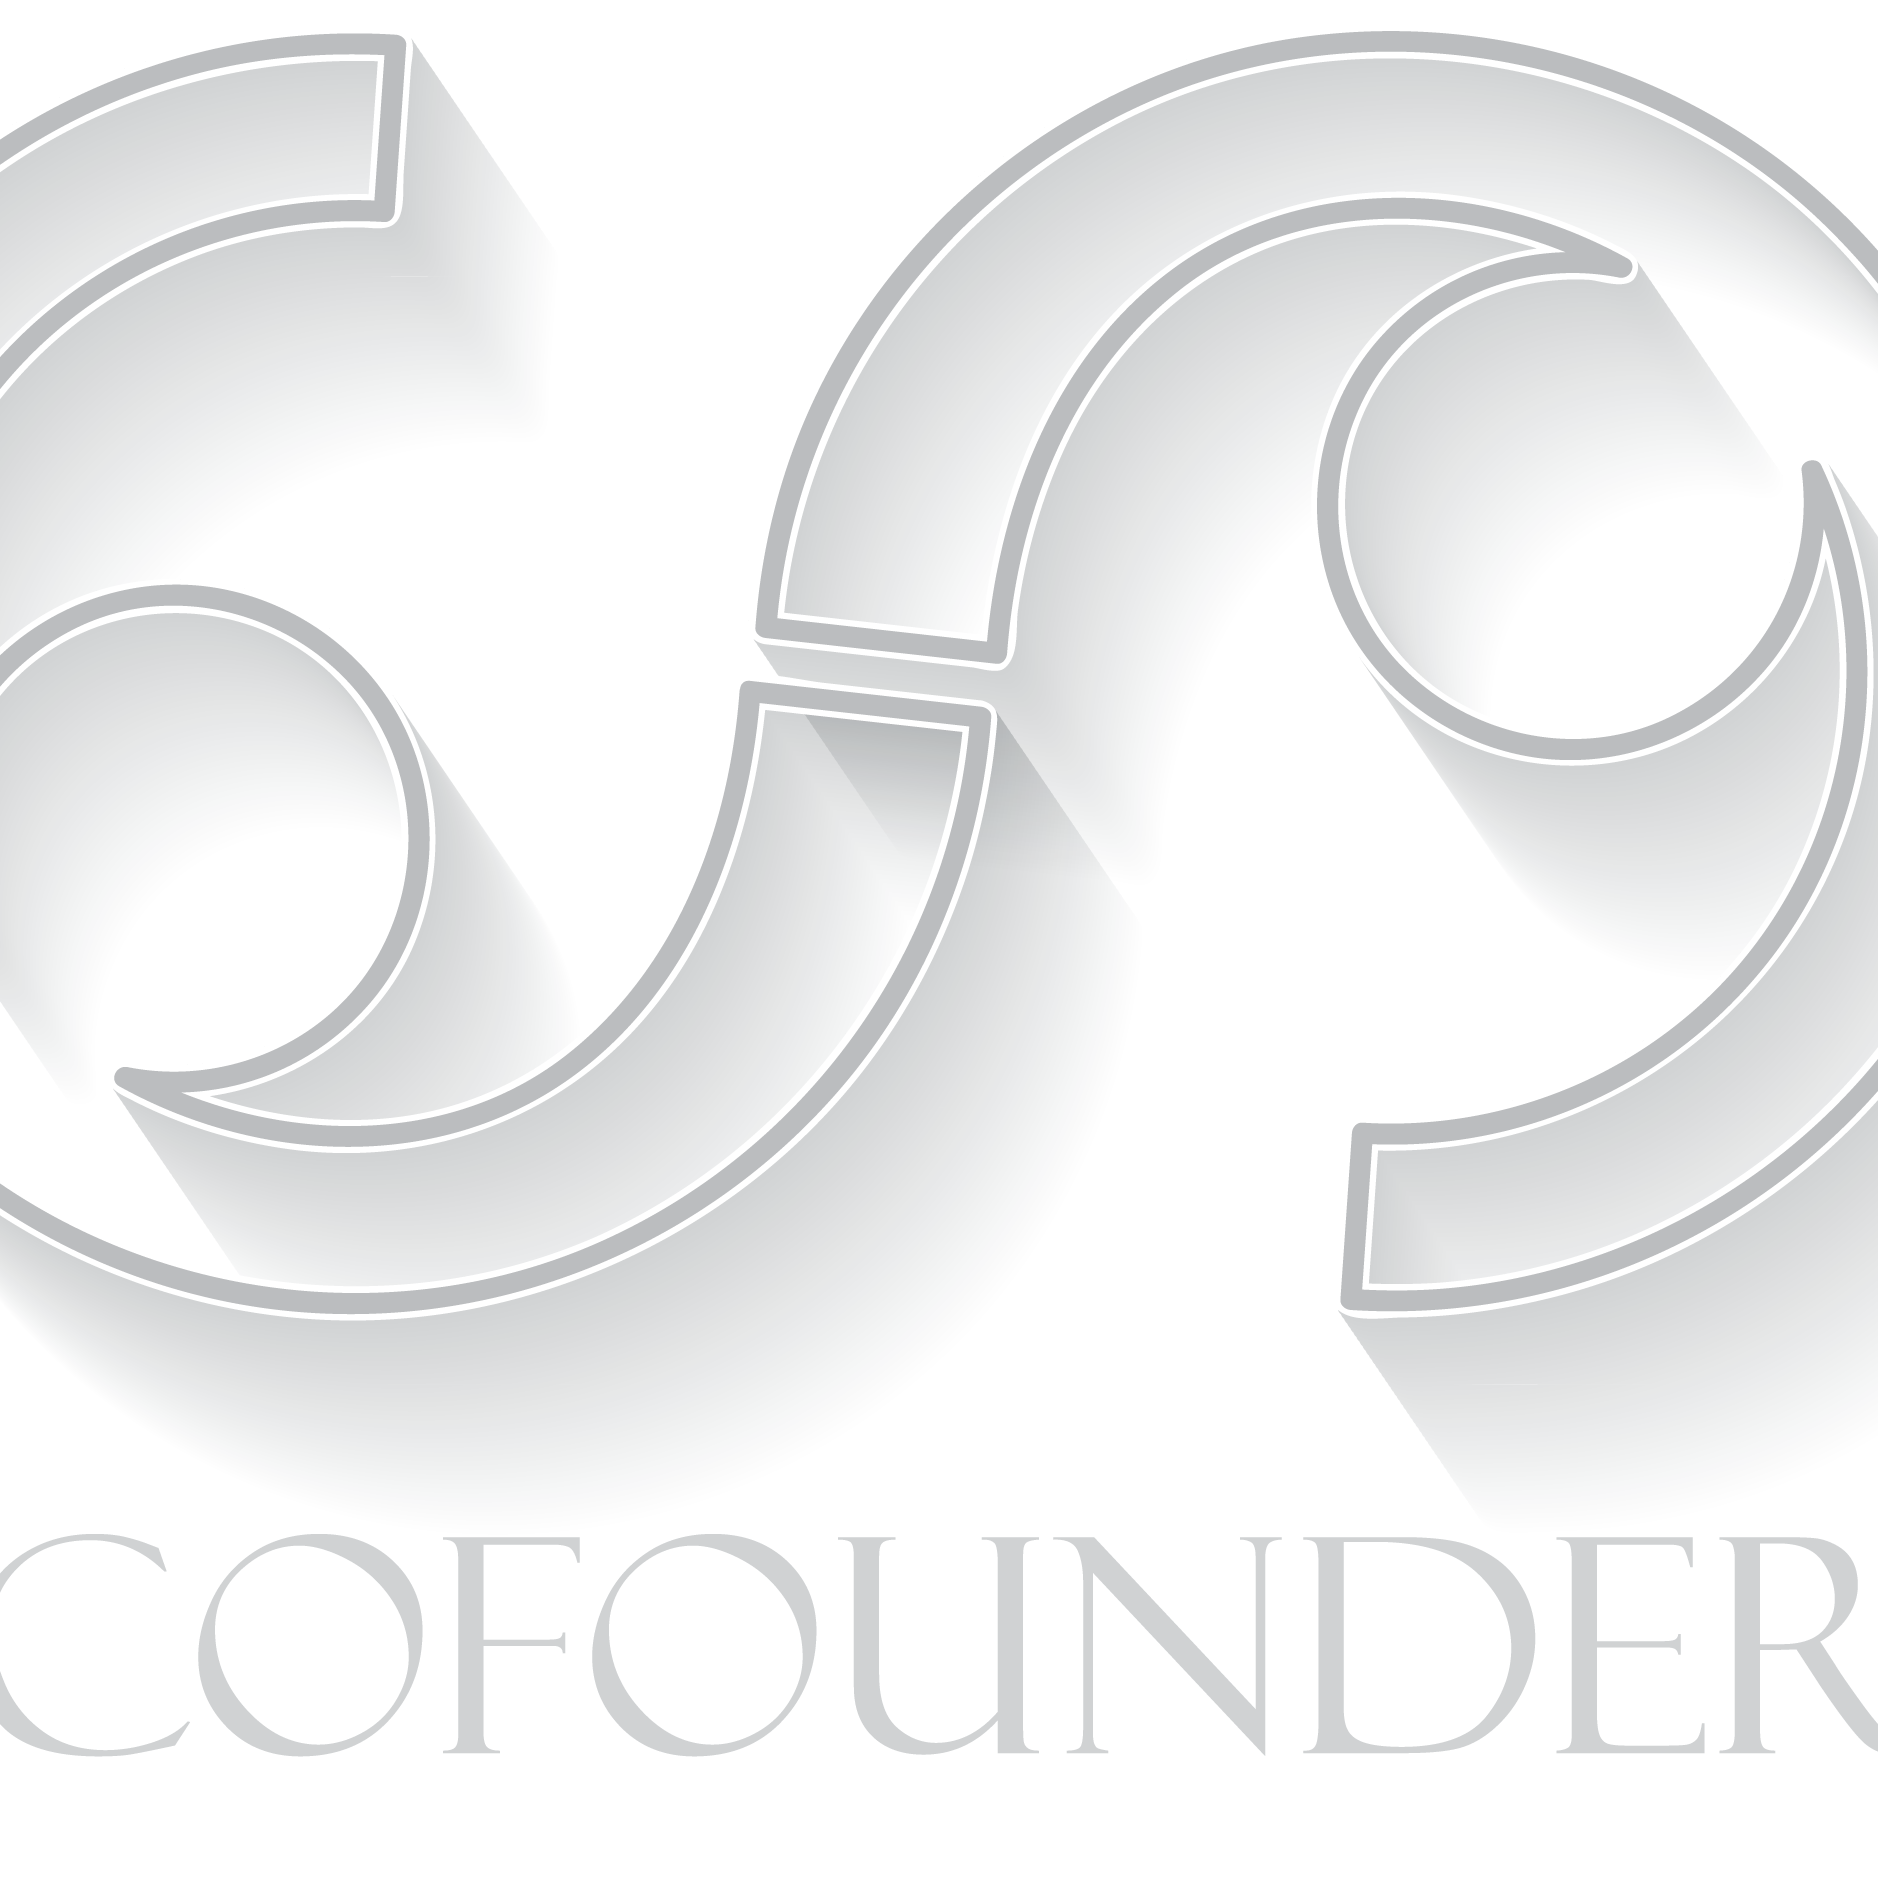 cofounder_logo.png